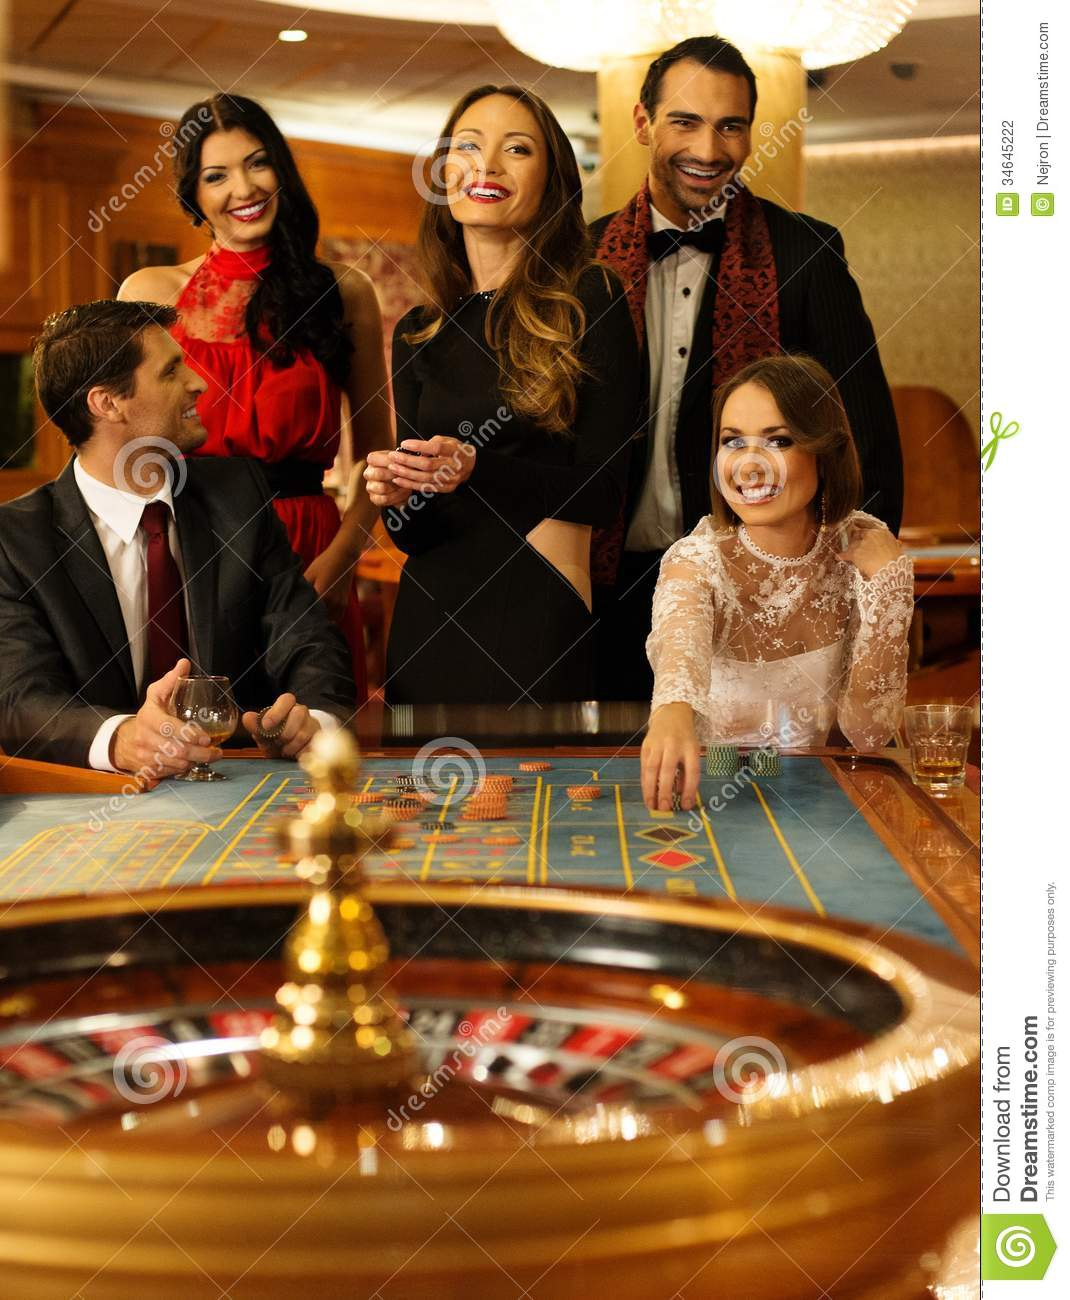 Casino Mensa